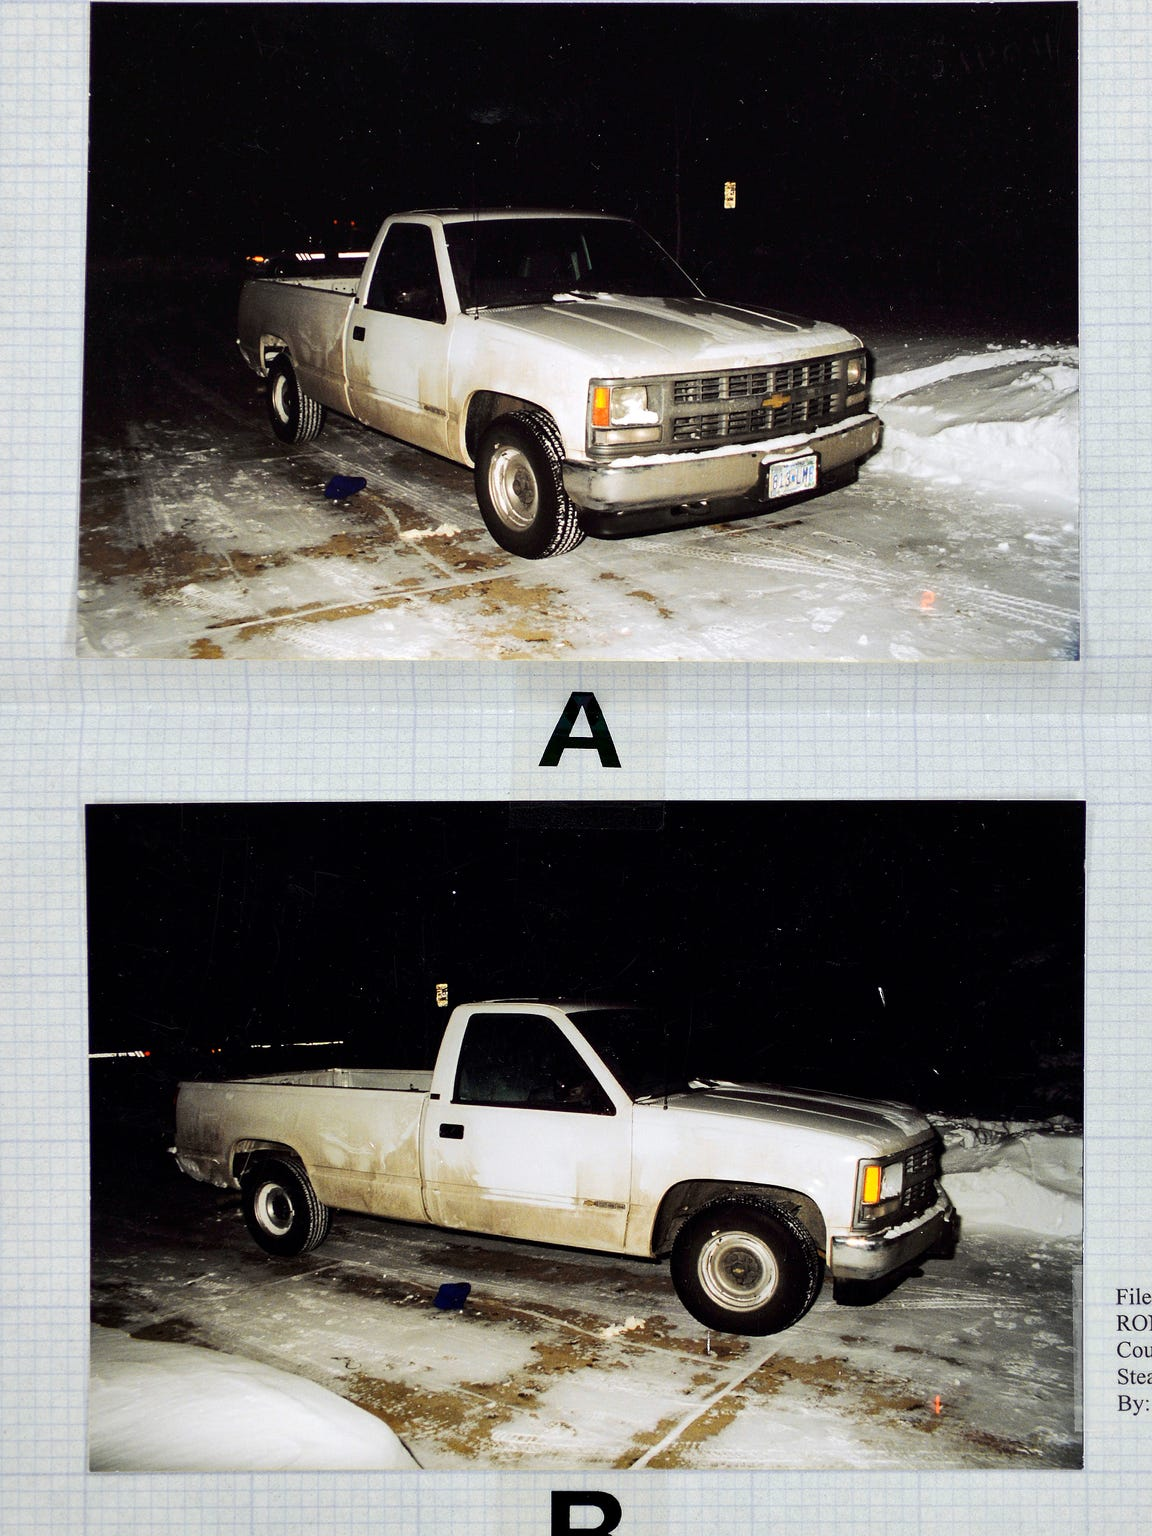 Evidence photos show the stolen white pickup used in